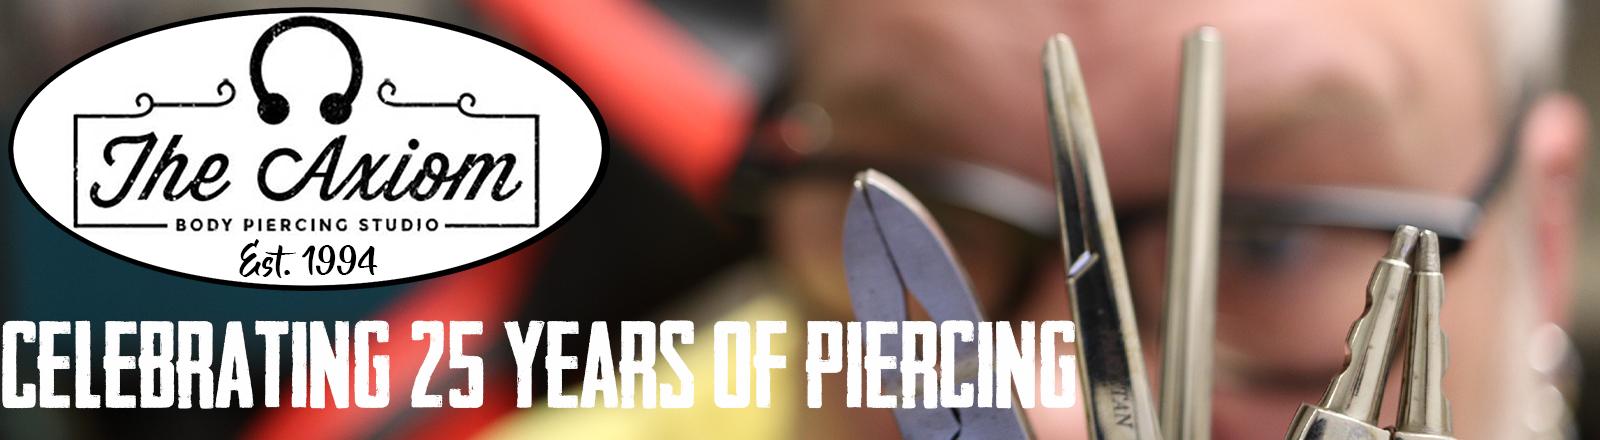 25 Yeas of Piercing